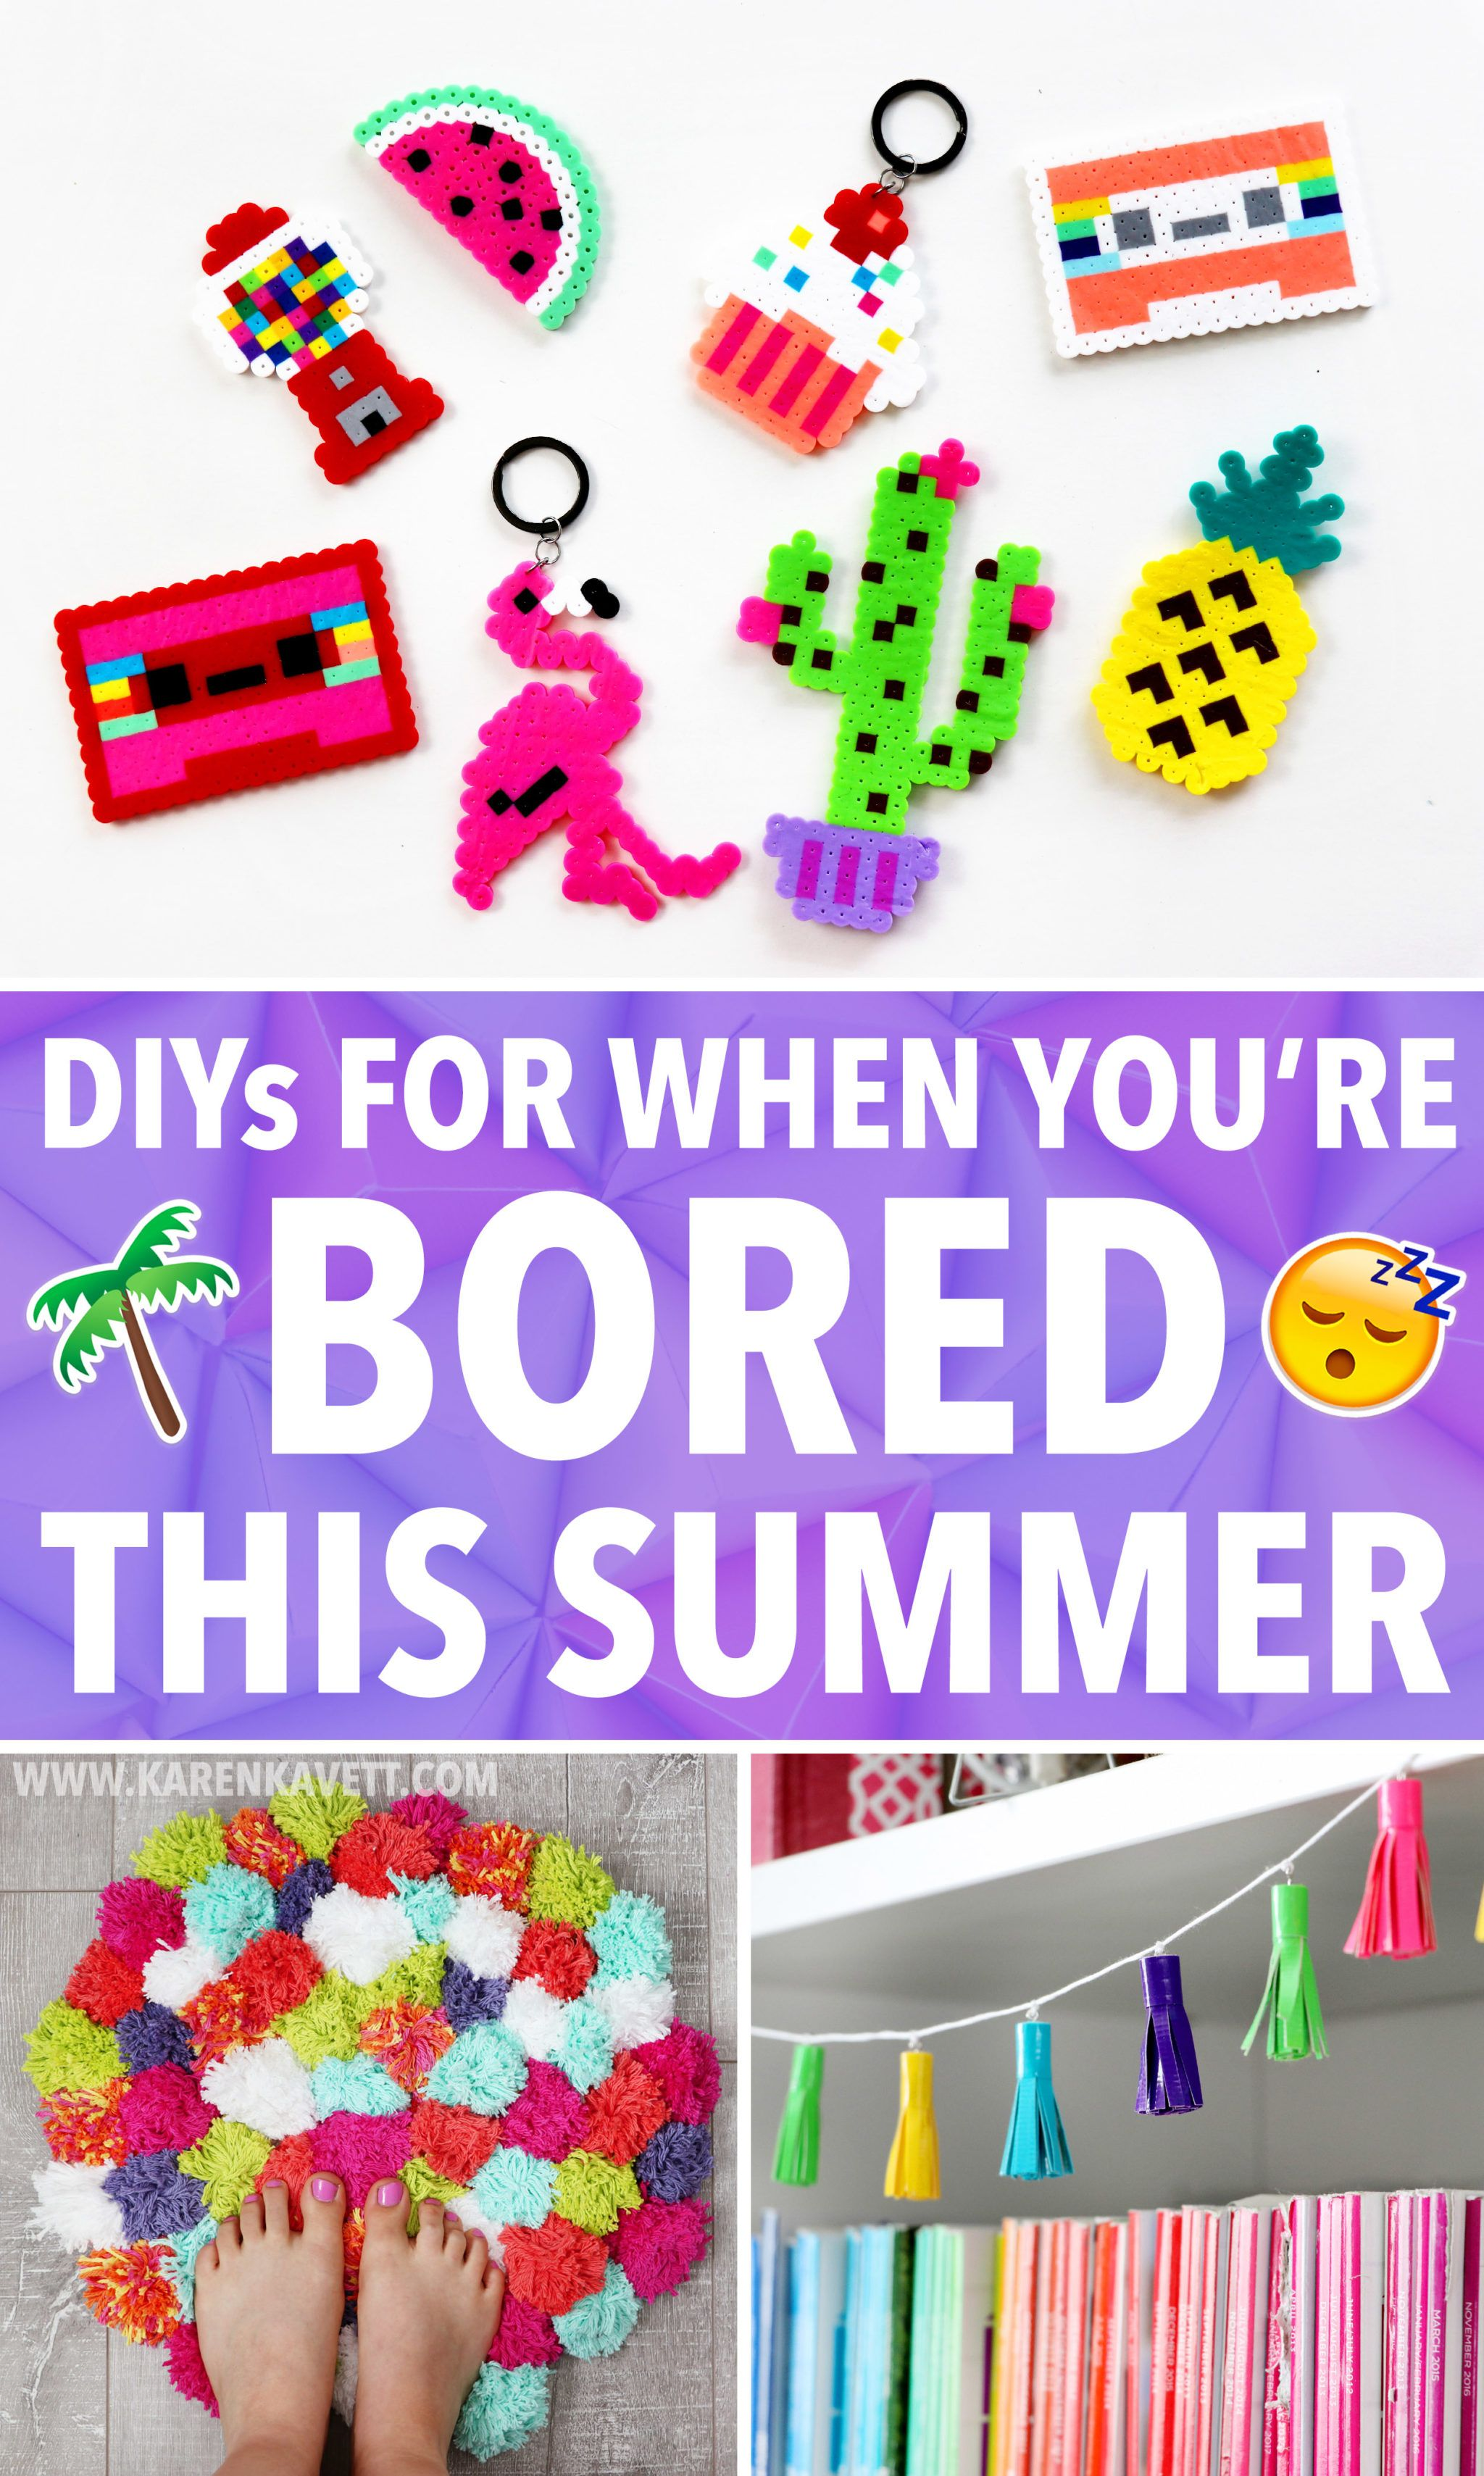 Arts And Crafts To Do When Your Bored